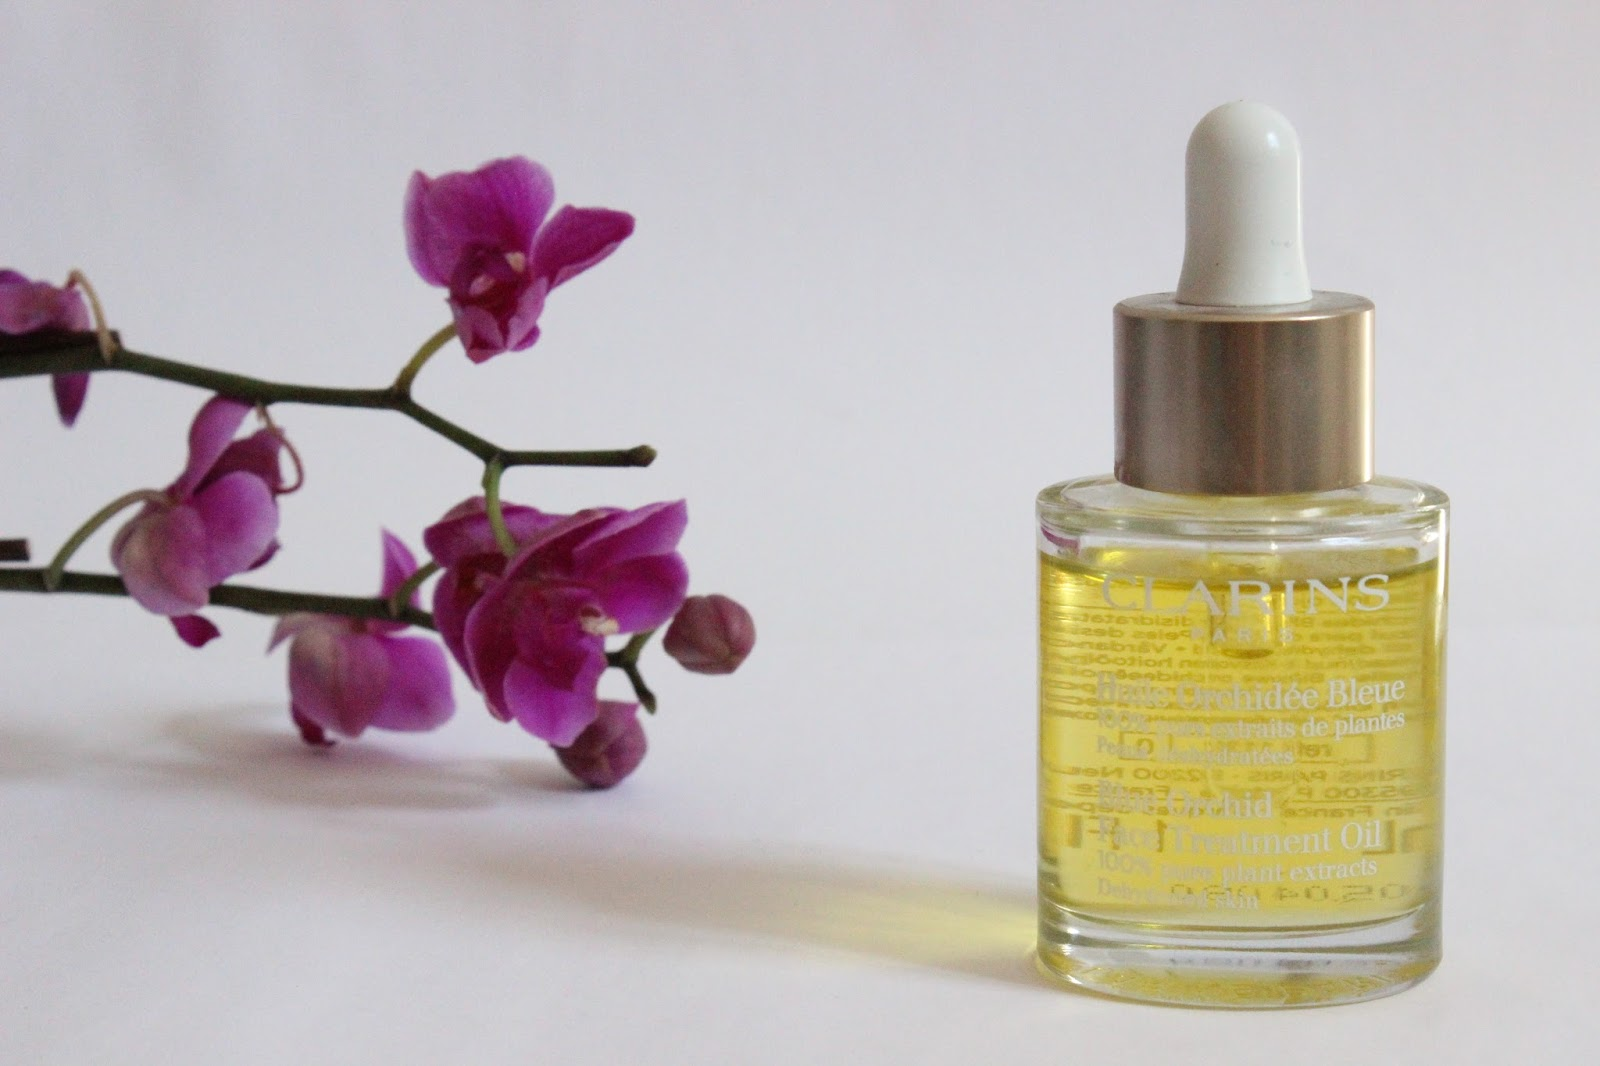 Clarins Blue Orchid Face Treatment Oil